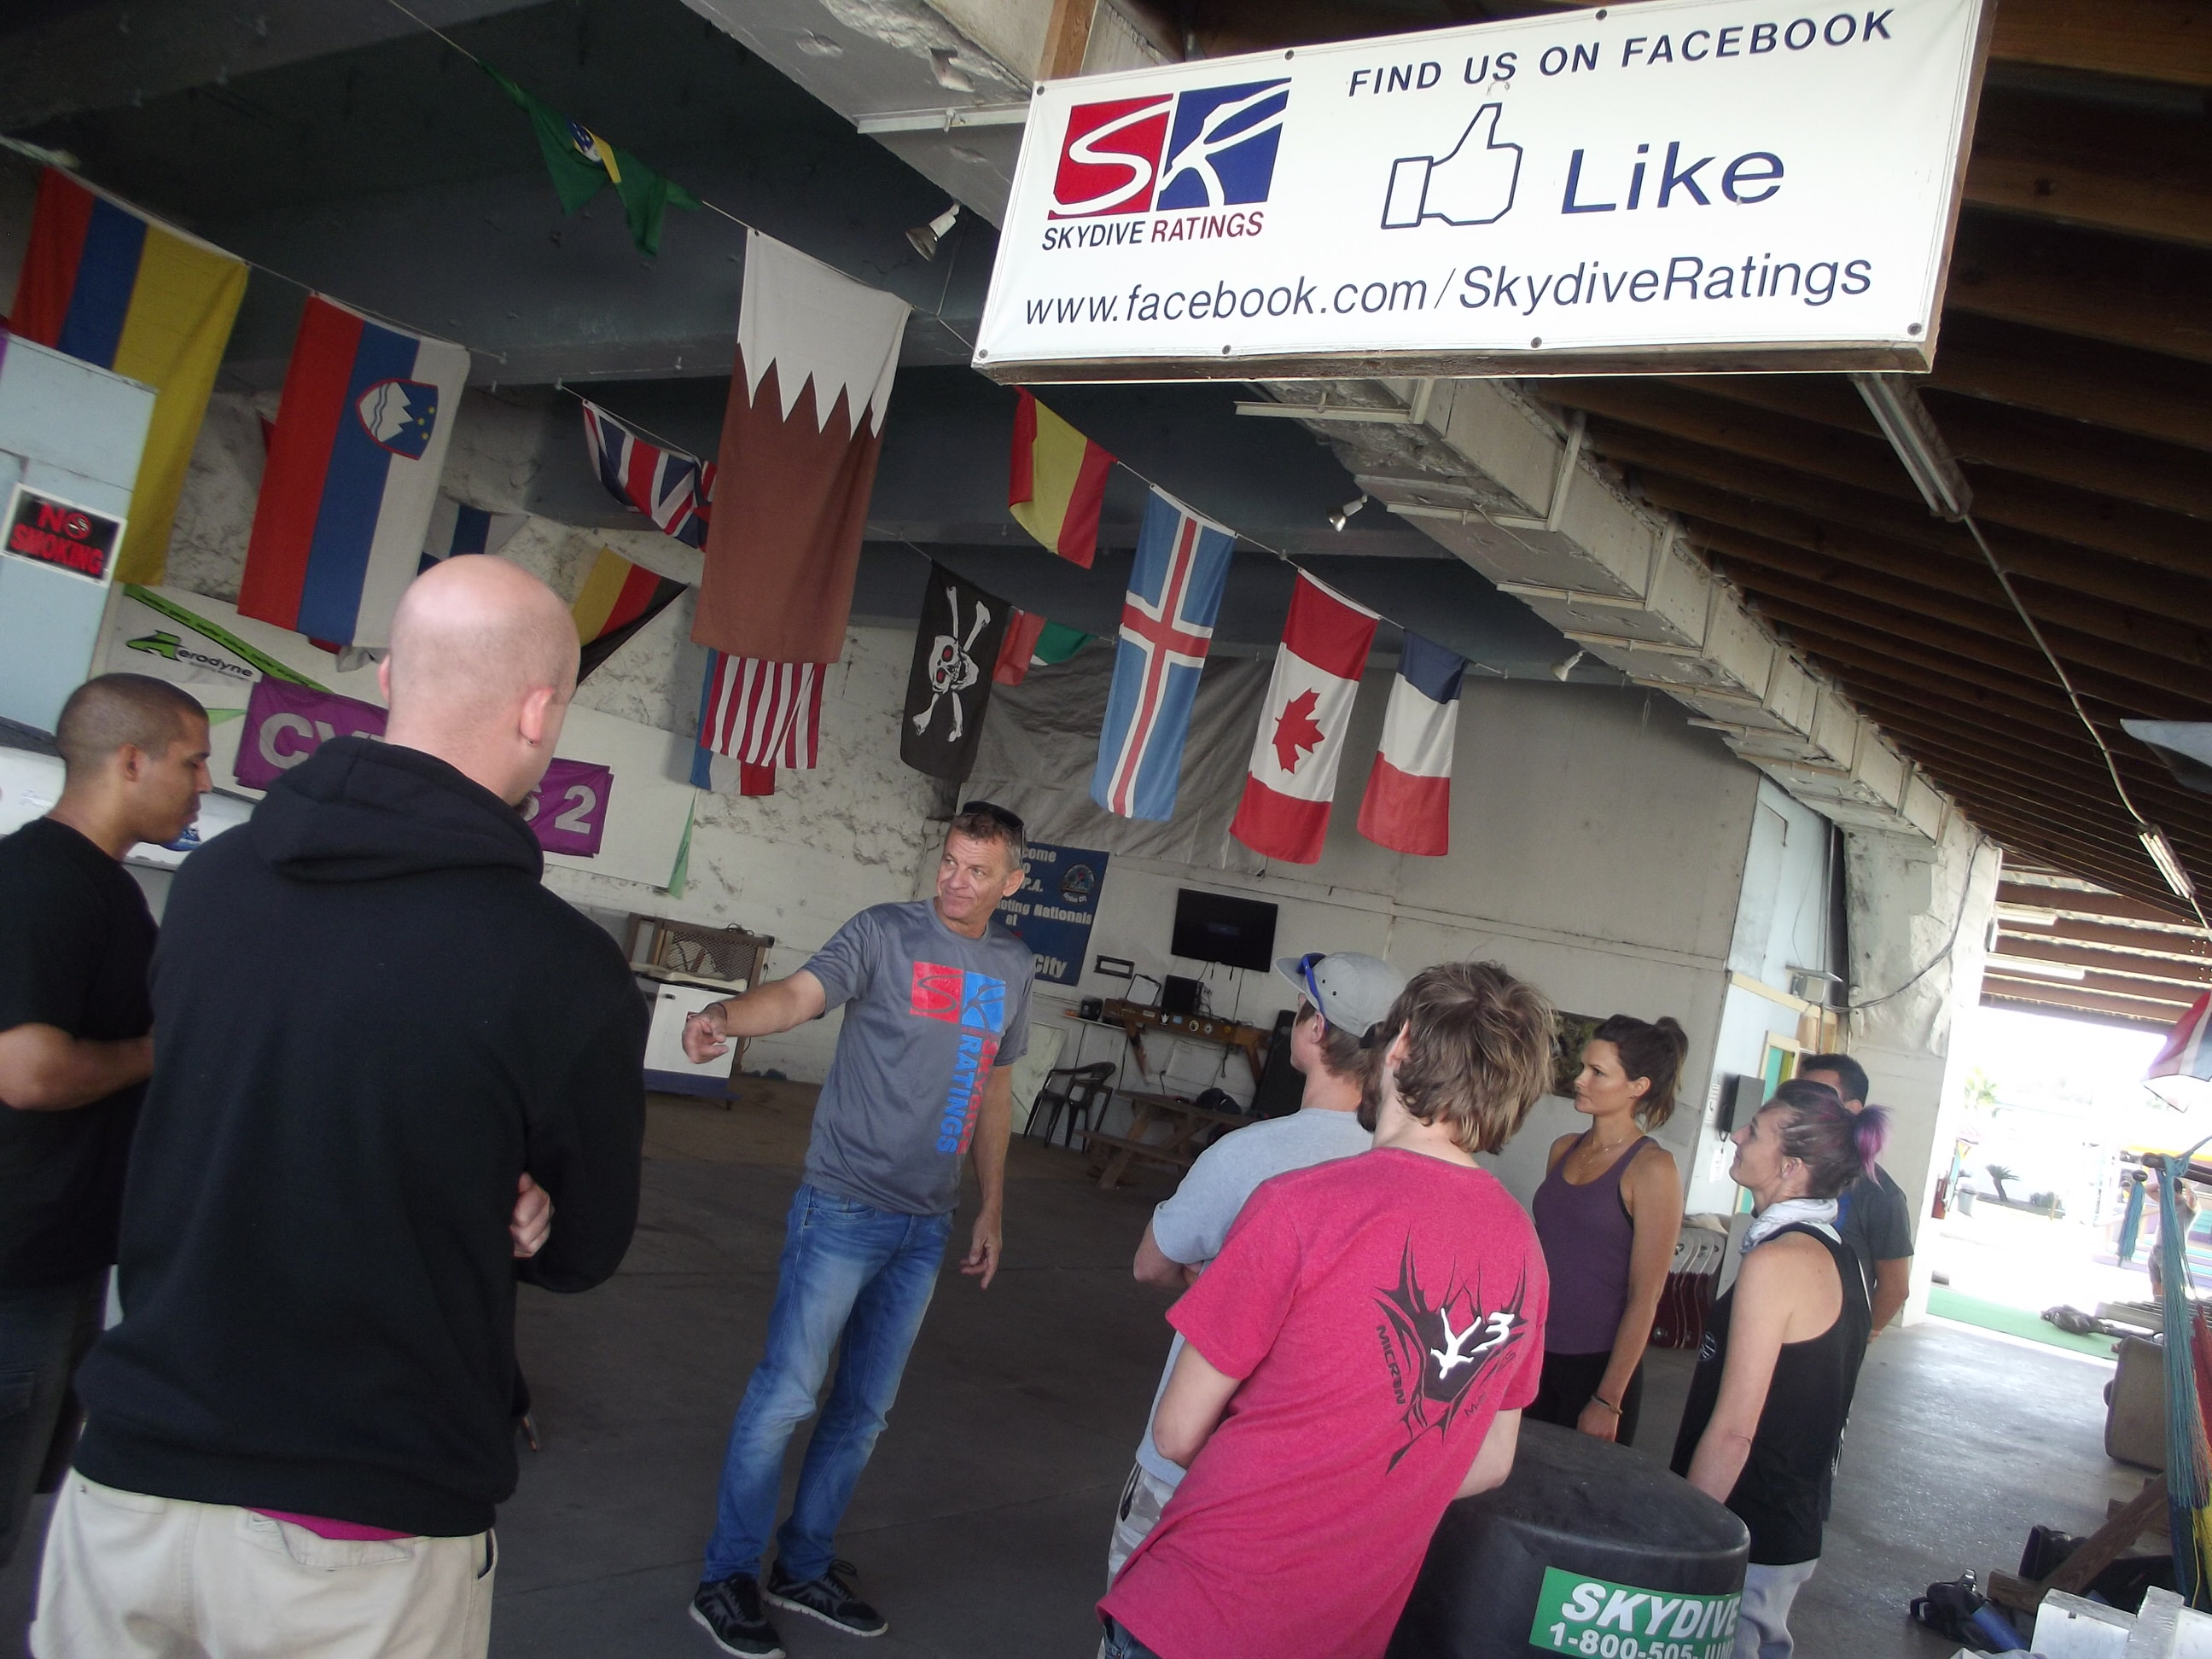 Bram teaches a class at Skydive Ratings